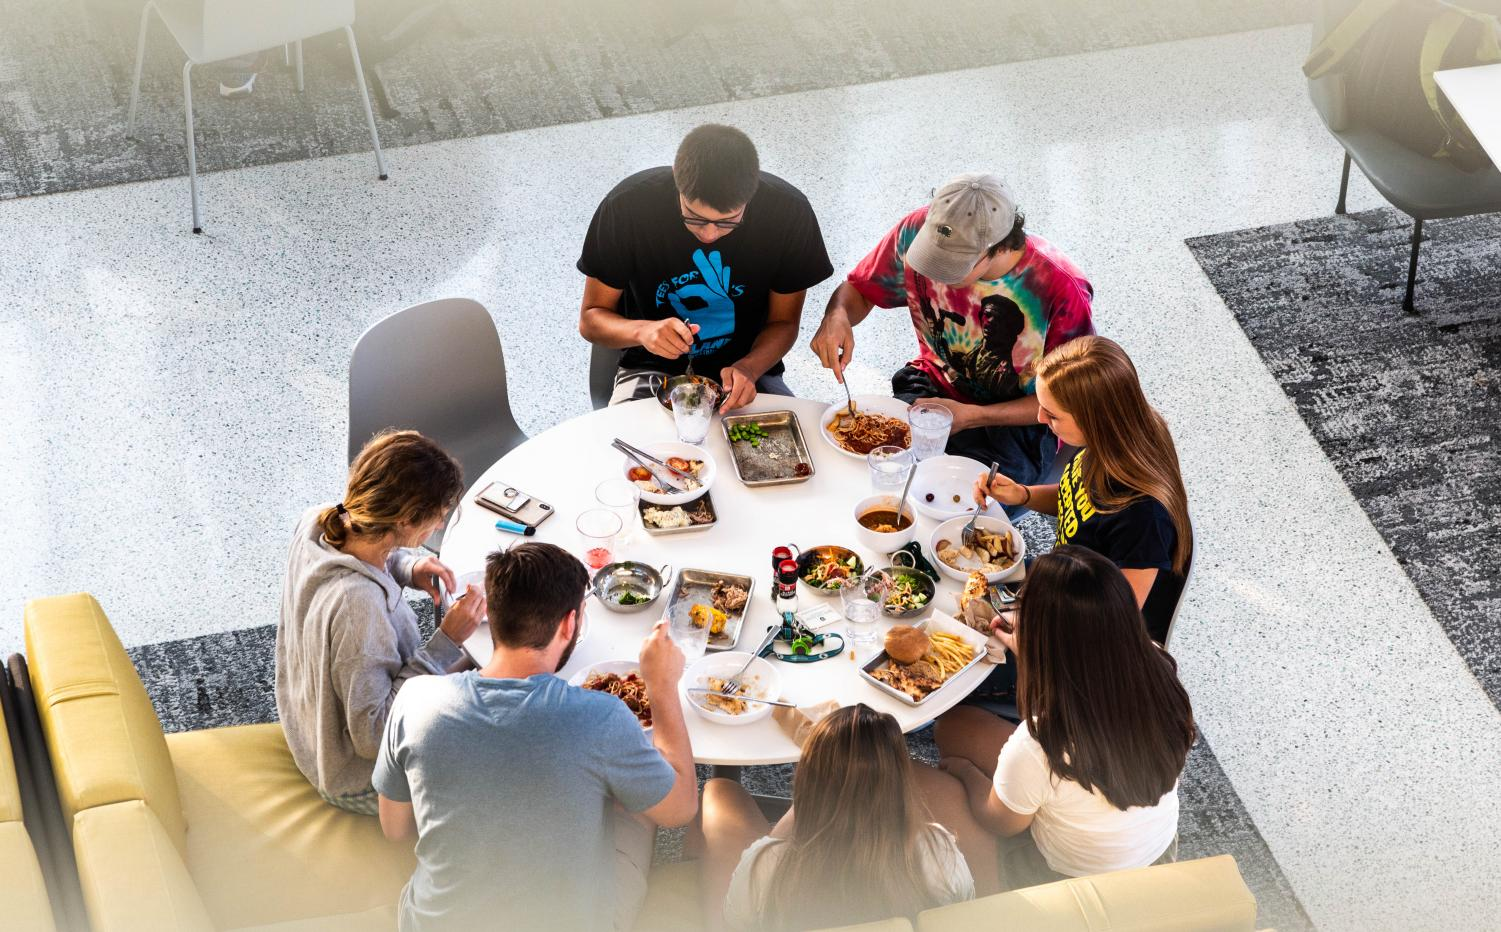 Students enjoy their meals at The Commons.